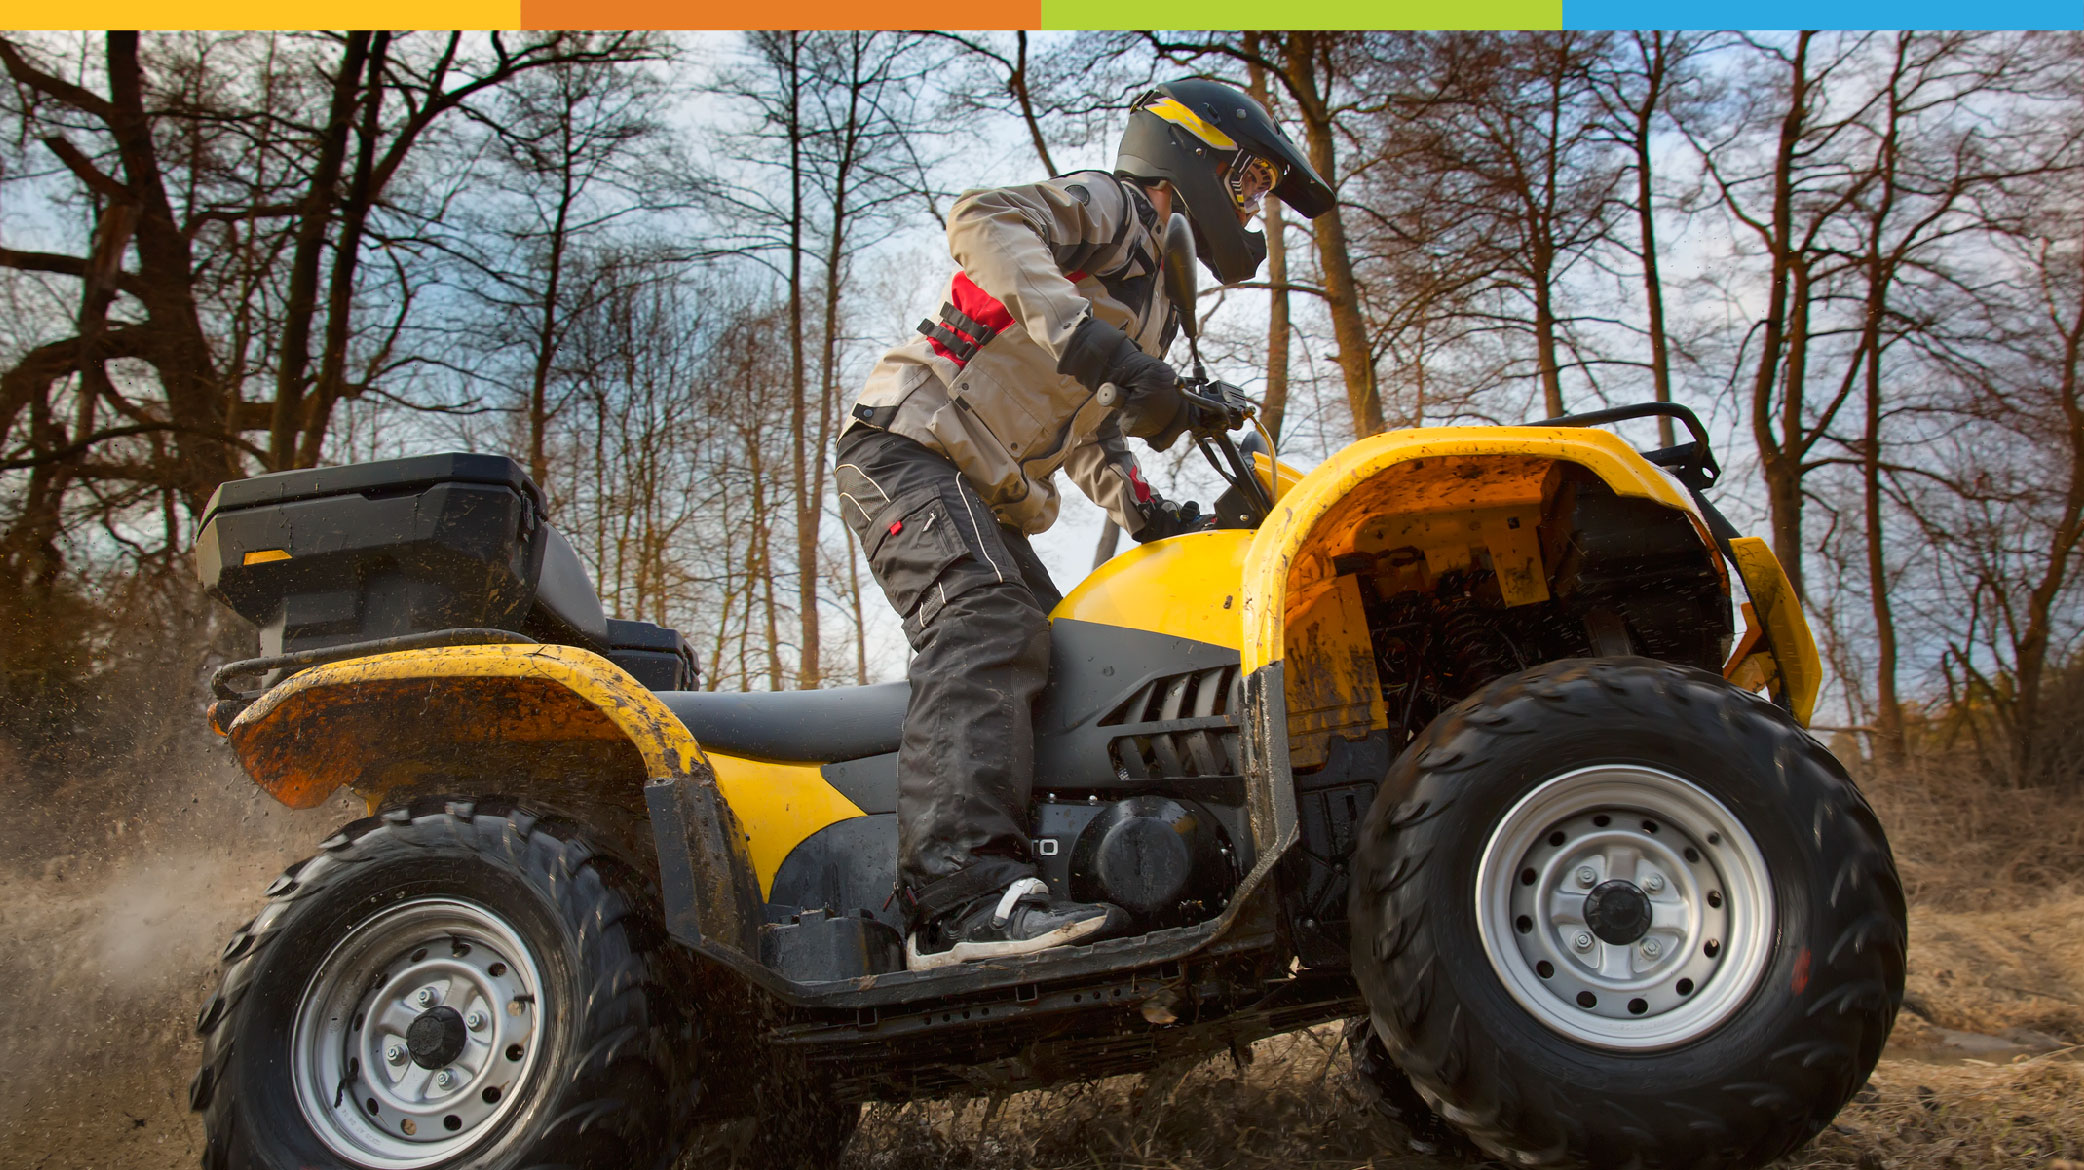 ATV-SxS Safety Rider Course